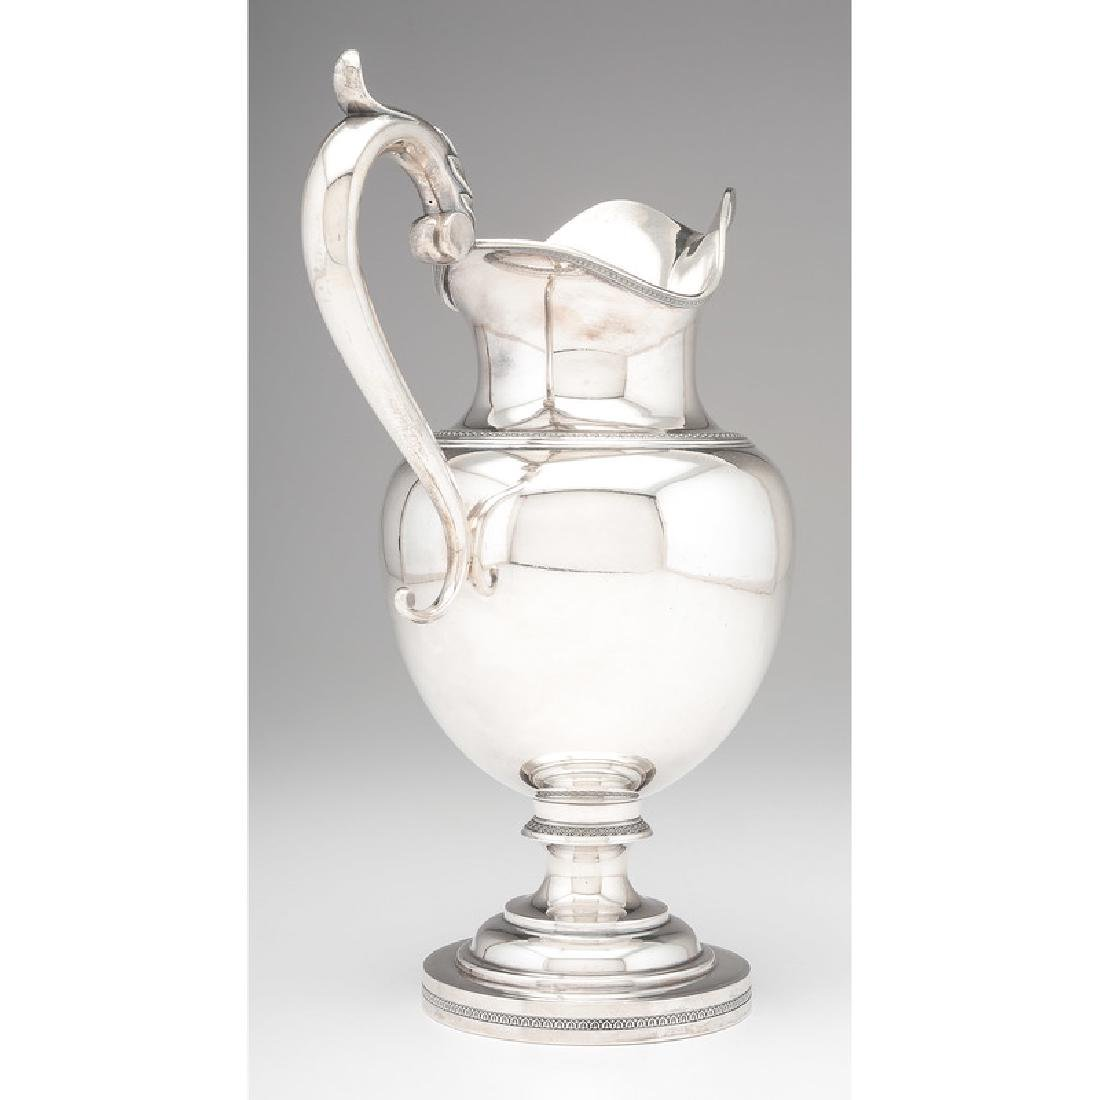 Edward Kinsey Coin Silver Pitcher, Presented to Miles - 3